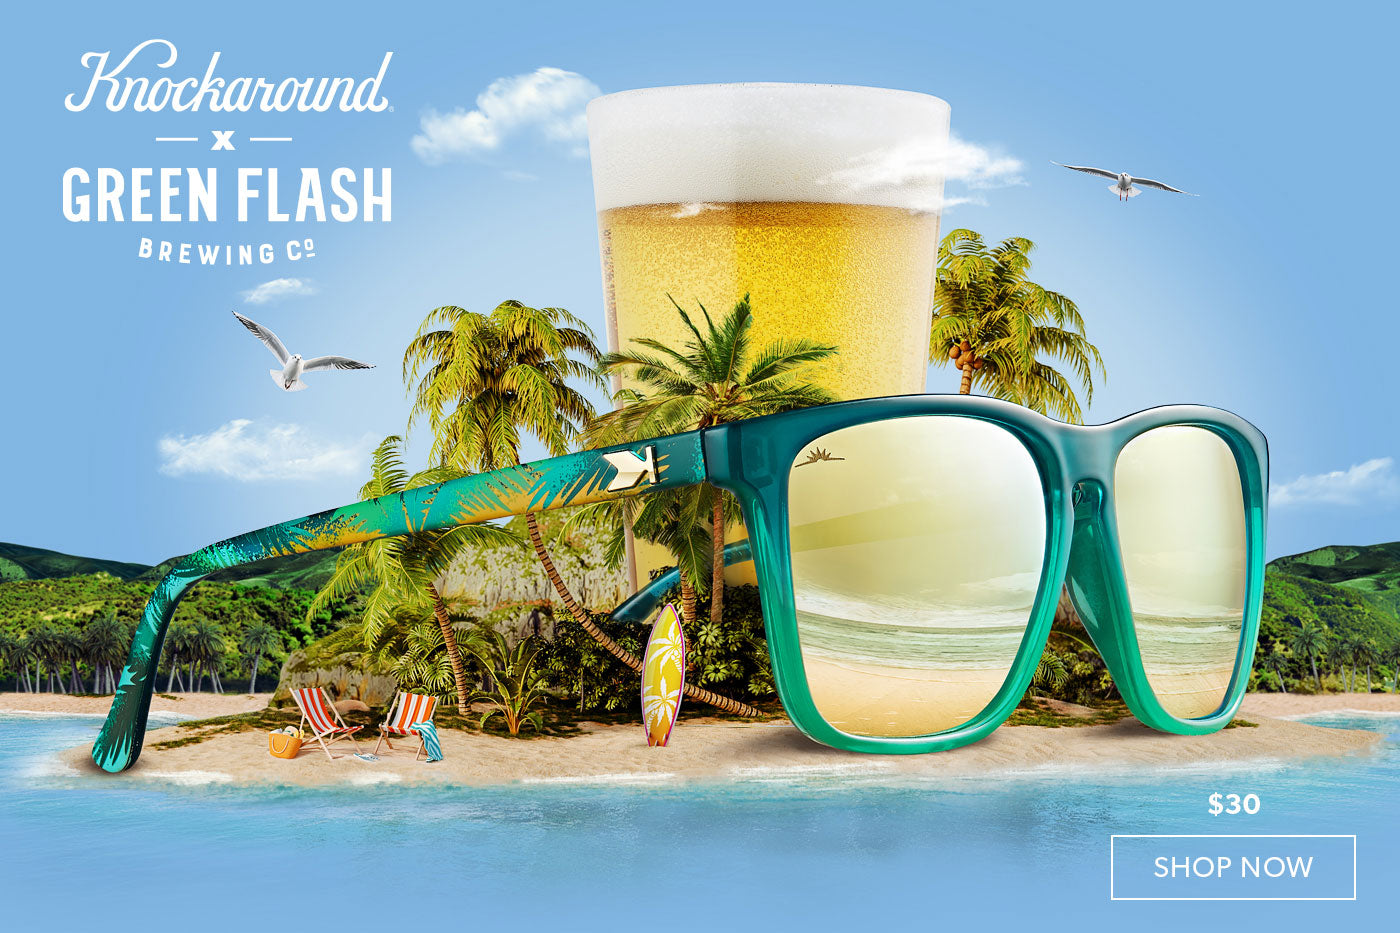 Knockaround X Green Flash Release Party